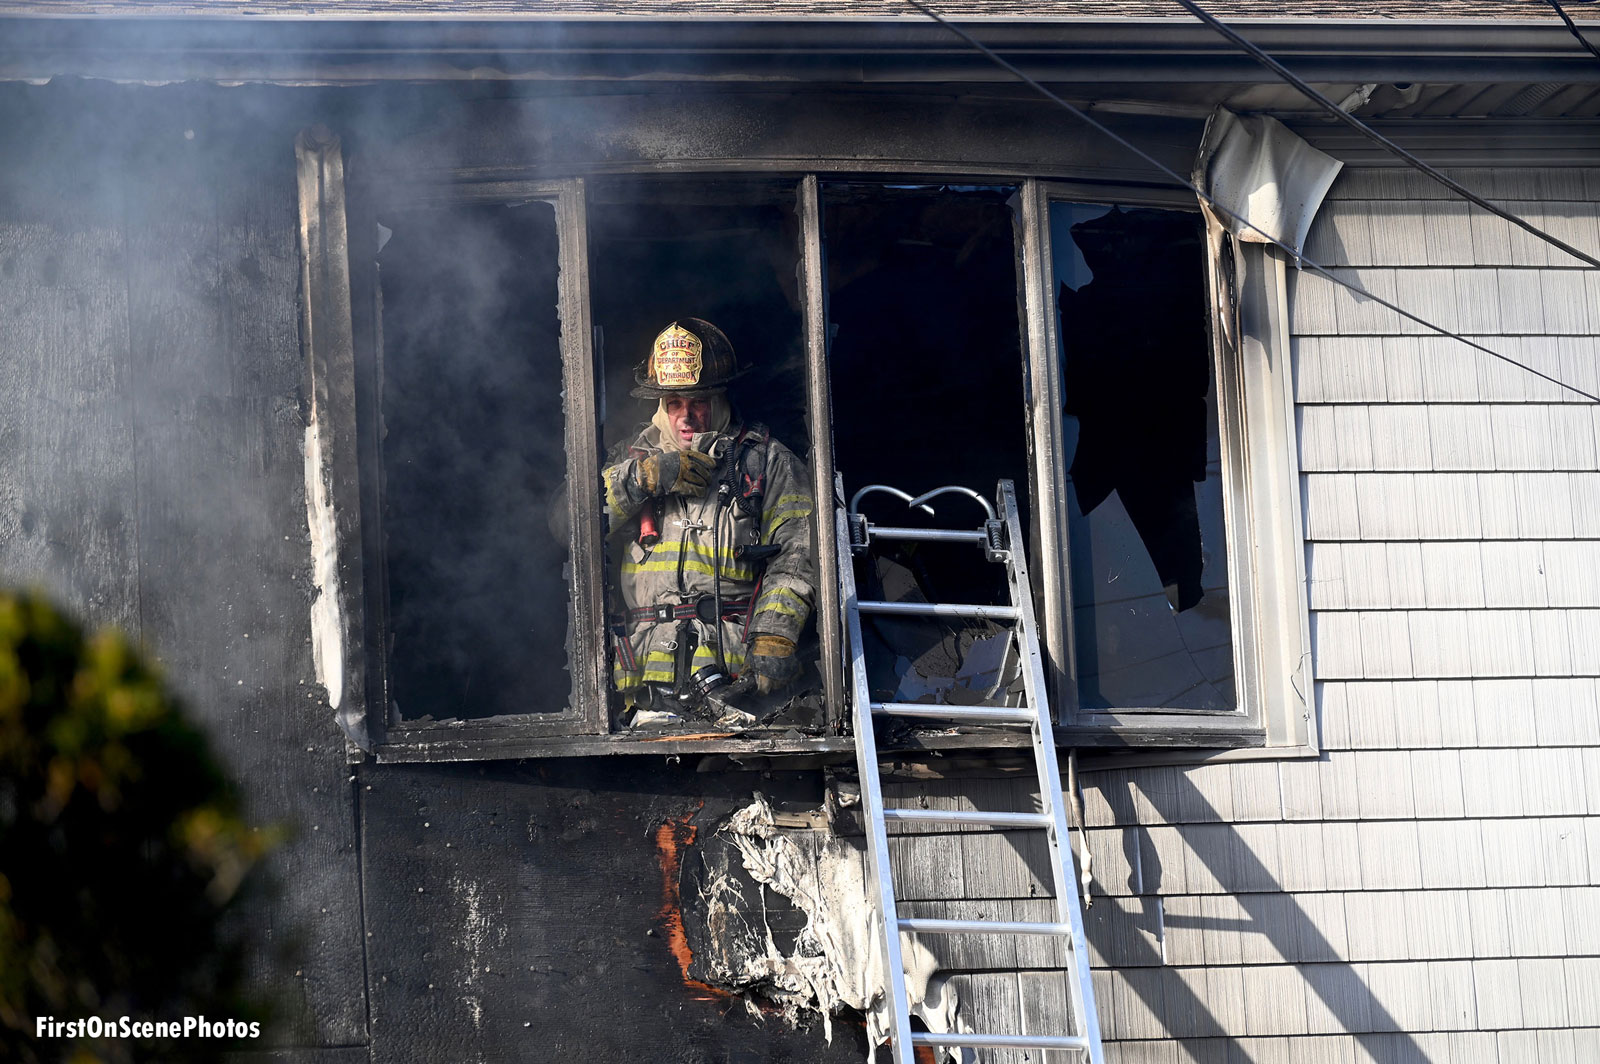 Firefighter at the scene of the fire.